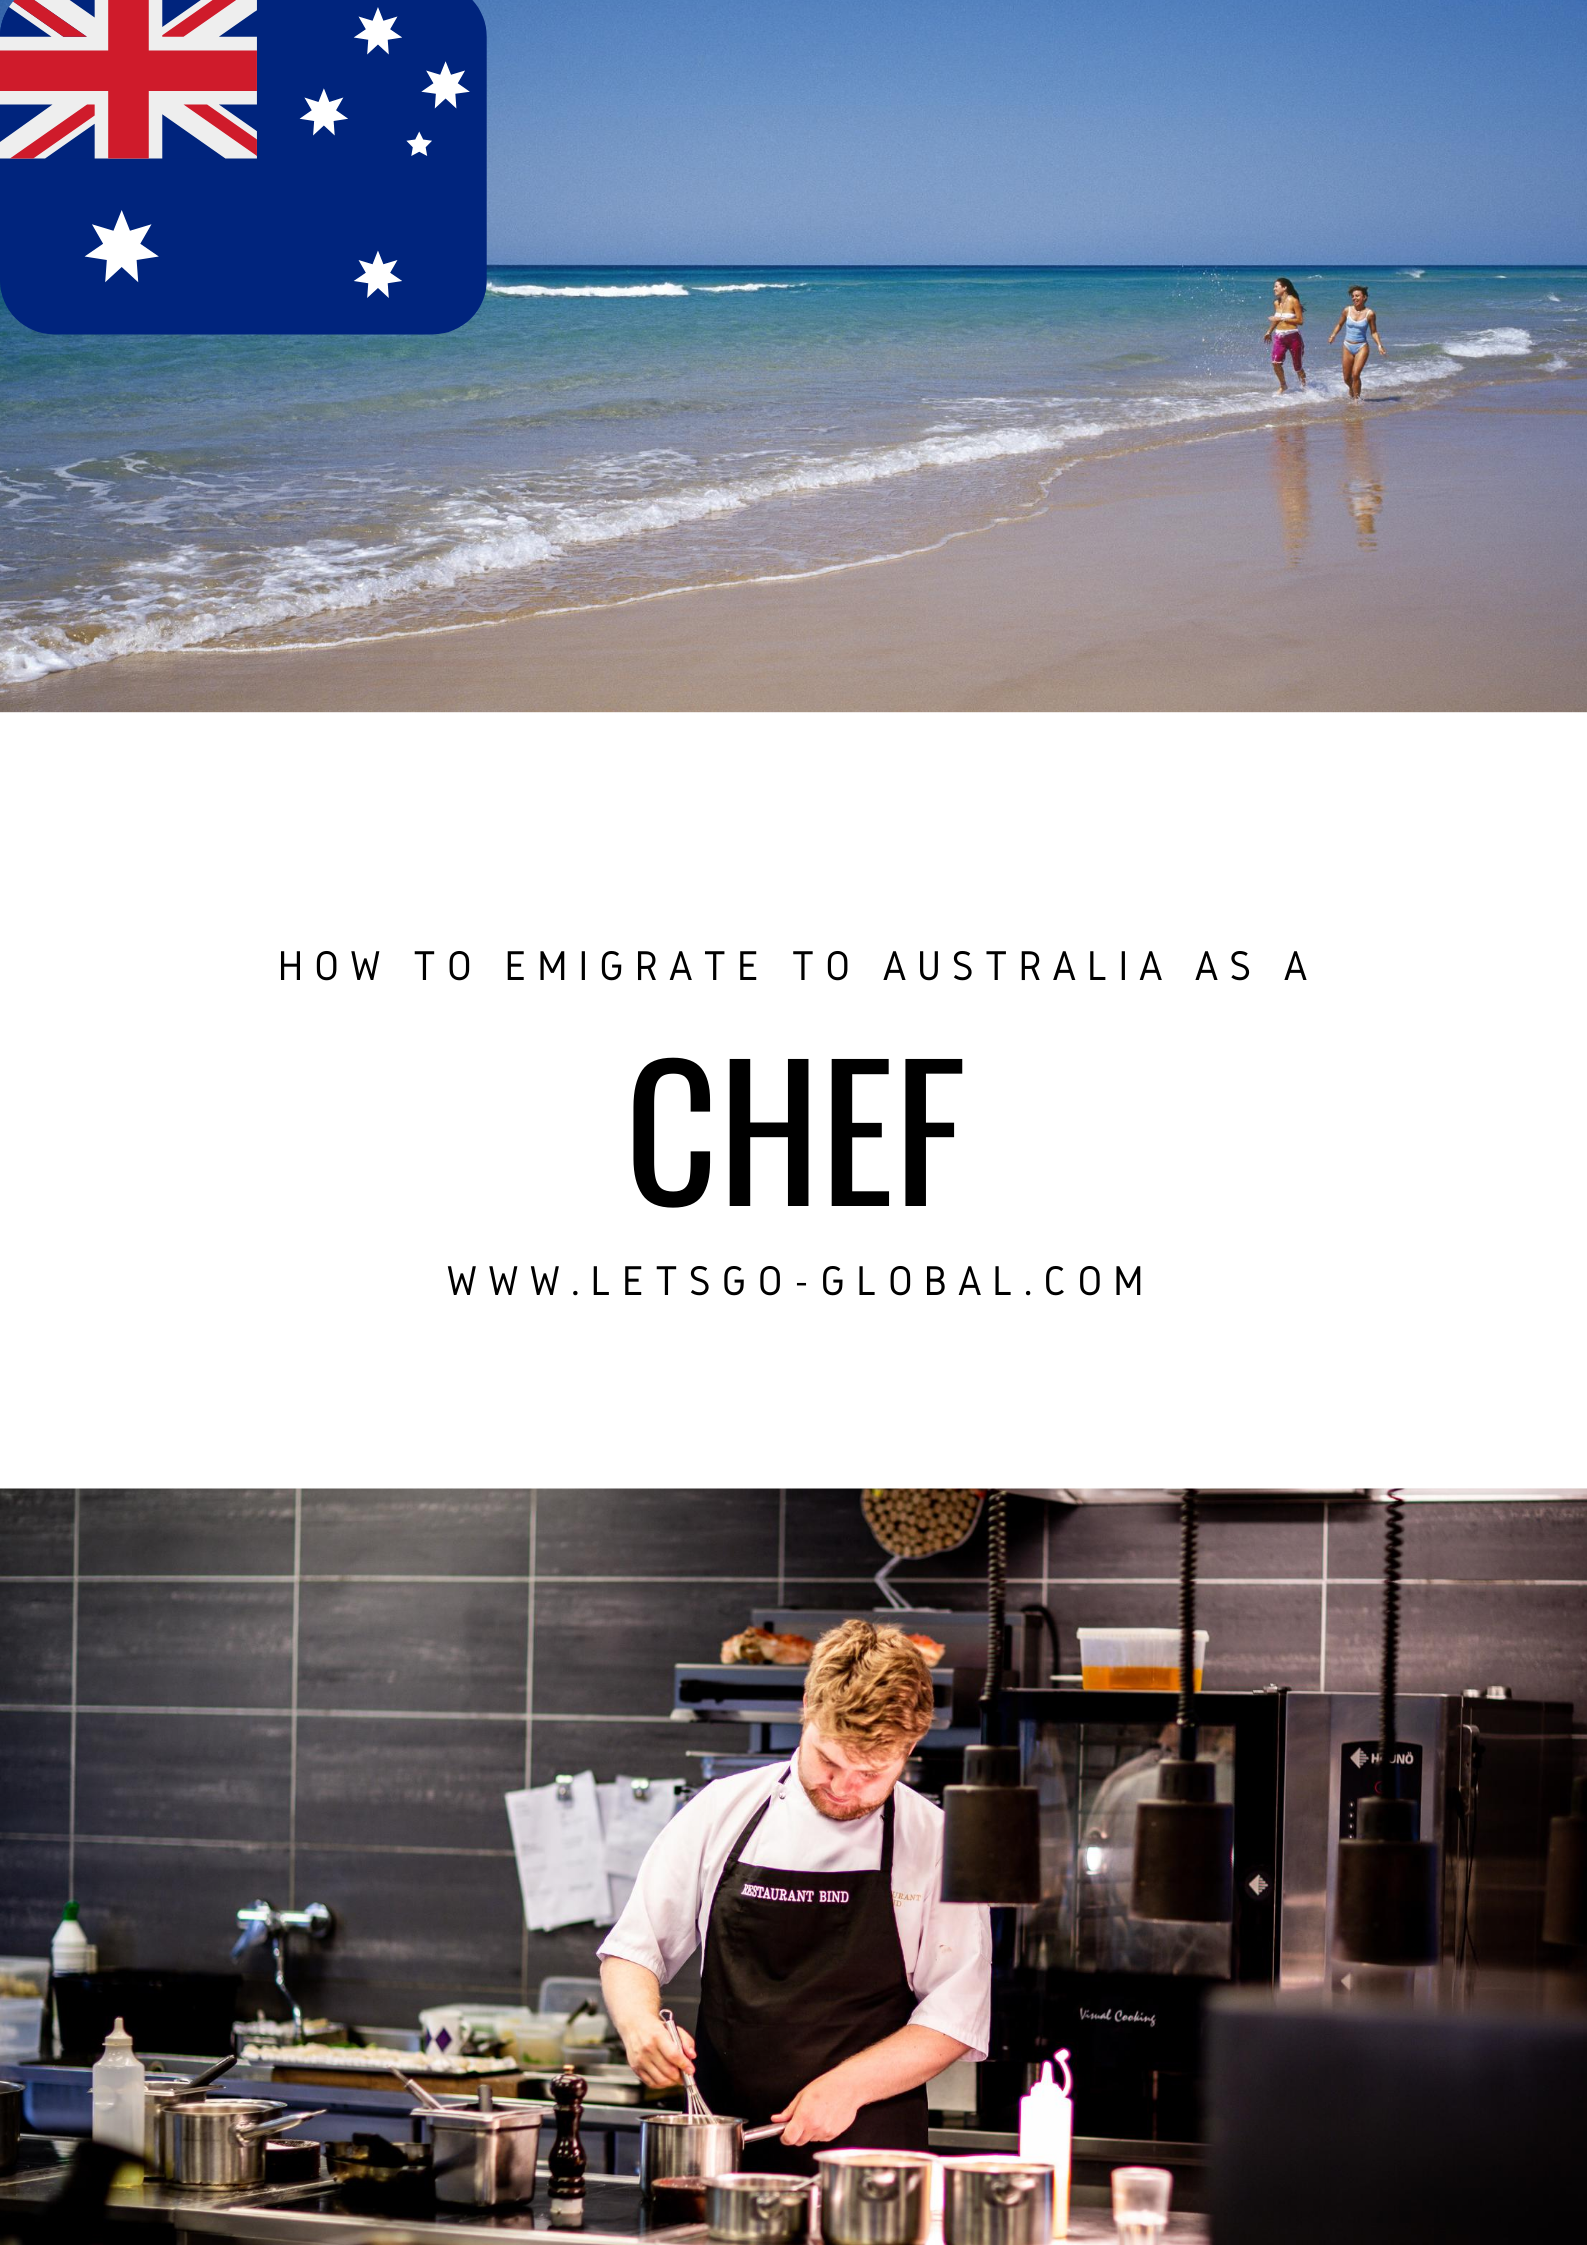 Migrate to Australia as a Chef